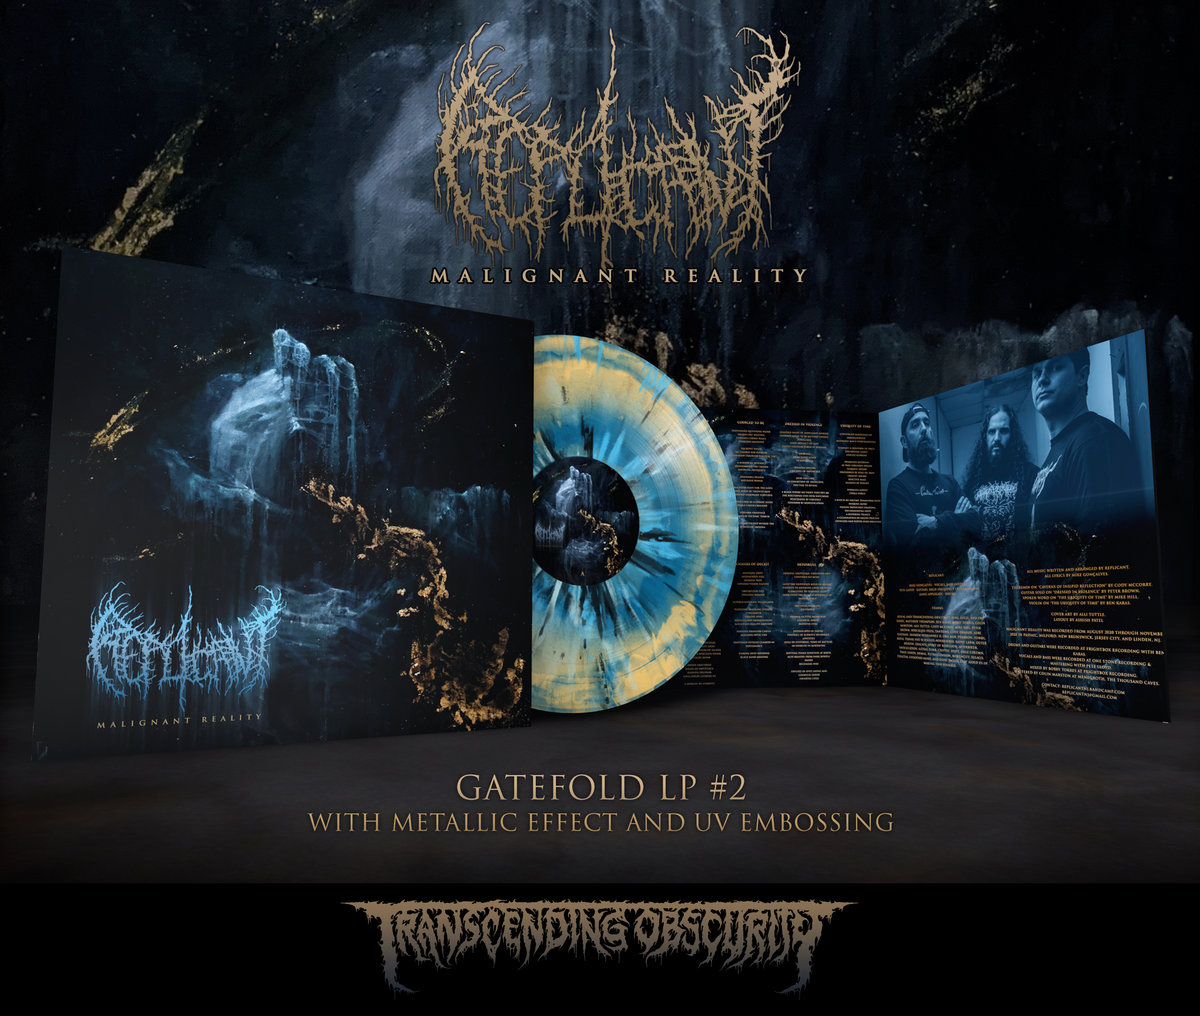 REPLICANT - Malignant Reality Gatefold LP with Metallic Effect and Embossing (Limited to 100 per variant)